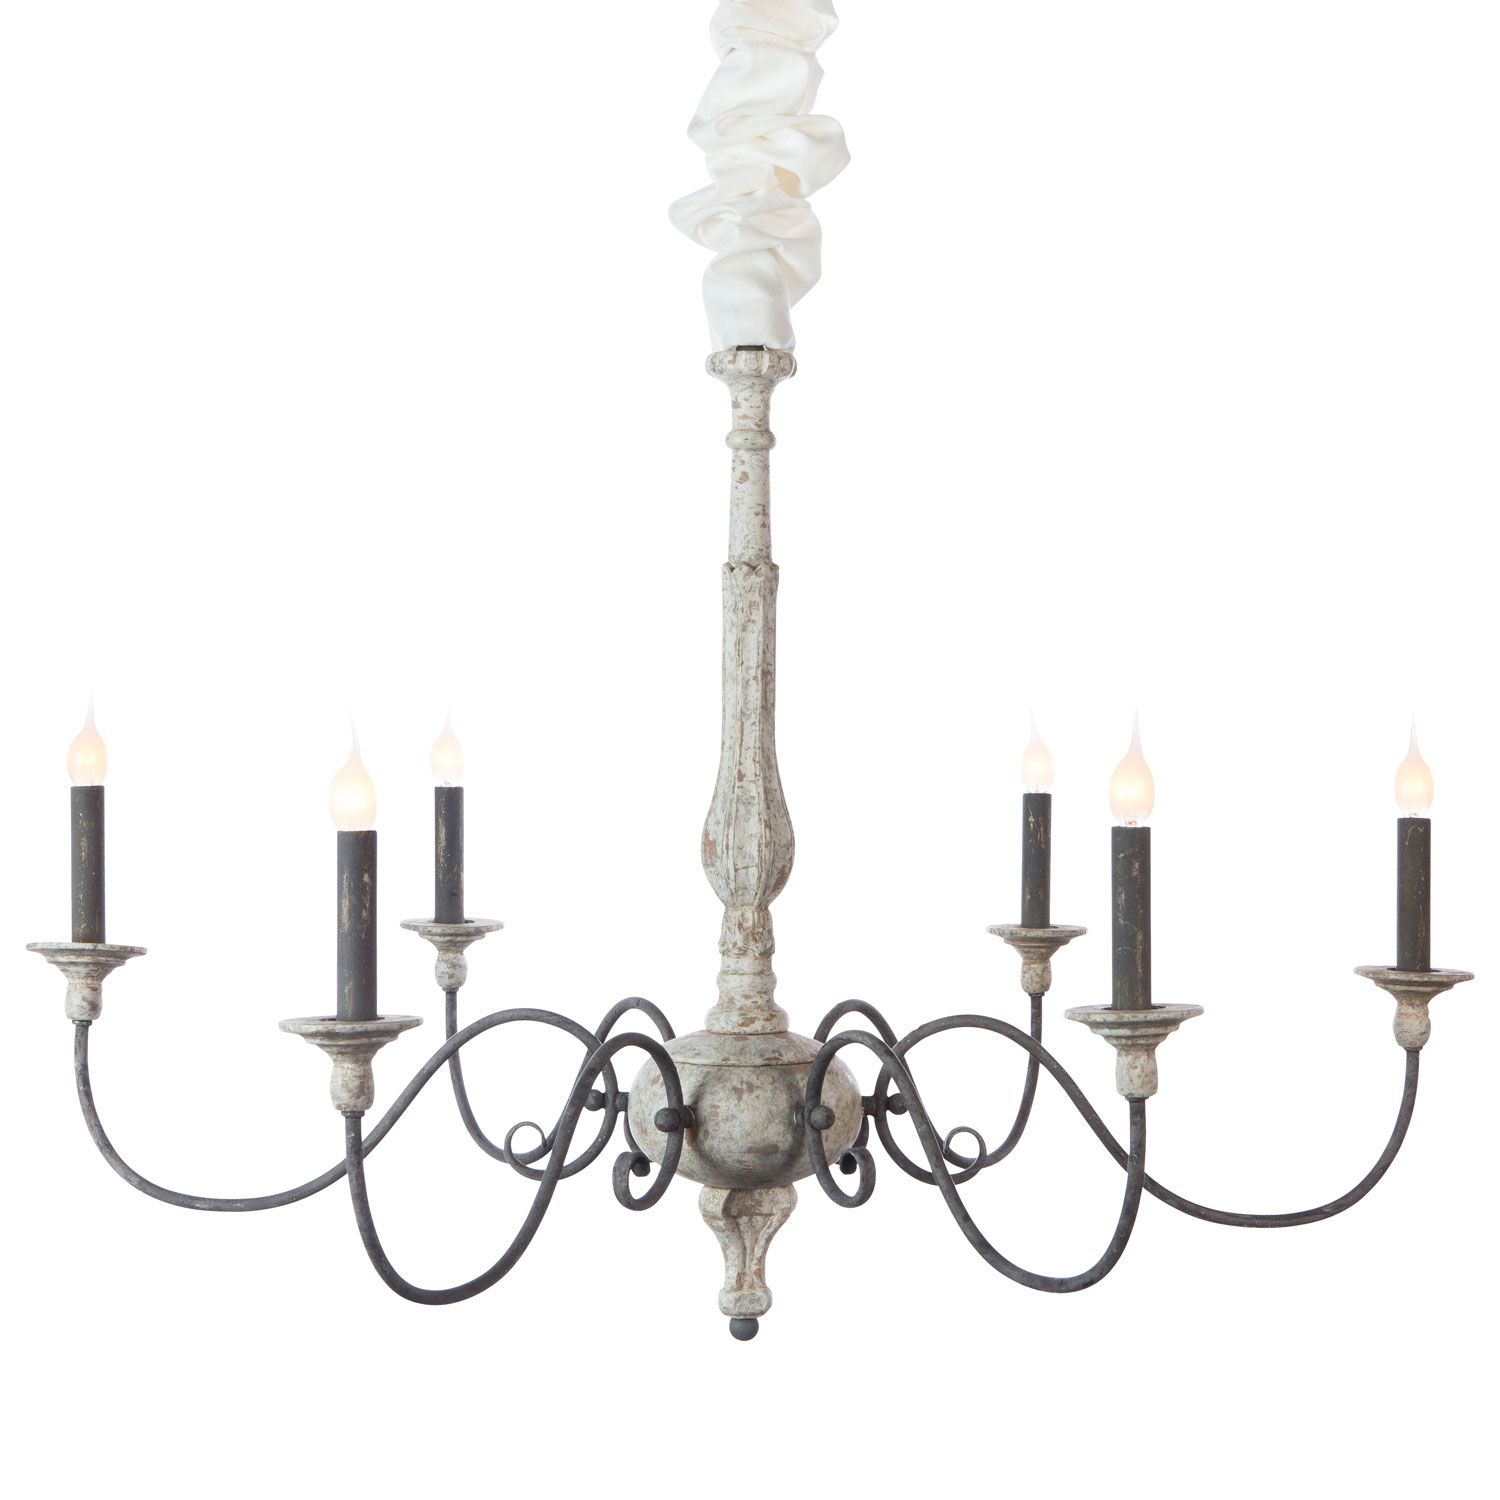 """The perfect addition to a French country-style foyer or living space, the Aiden Gray Rosemary chandelier presents a grand silhouette and distressed white finish for a touch of rustic elegance. Six scrolling metal arms support classic candelabra lights and simple turned bobeches for a timeless look, while the carved center column maintains a sophisticated air with a thoroughly traditional design. 36""""W x 36""""D x 26.5""""H. Zinc in Rustic White finish. Accepts six 60W candelabra bulb..."""